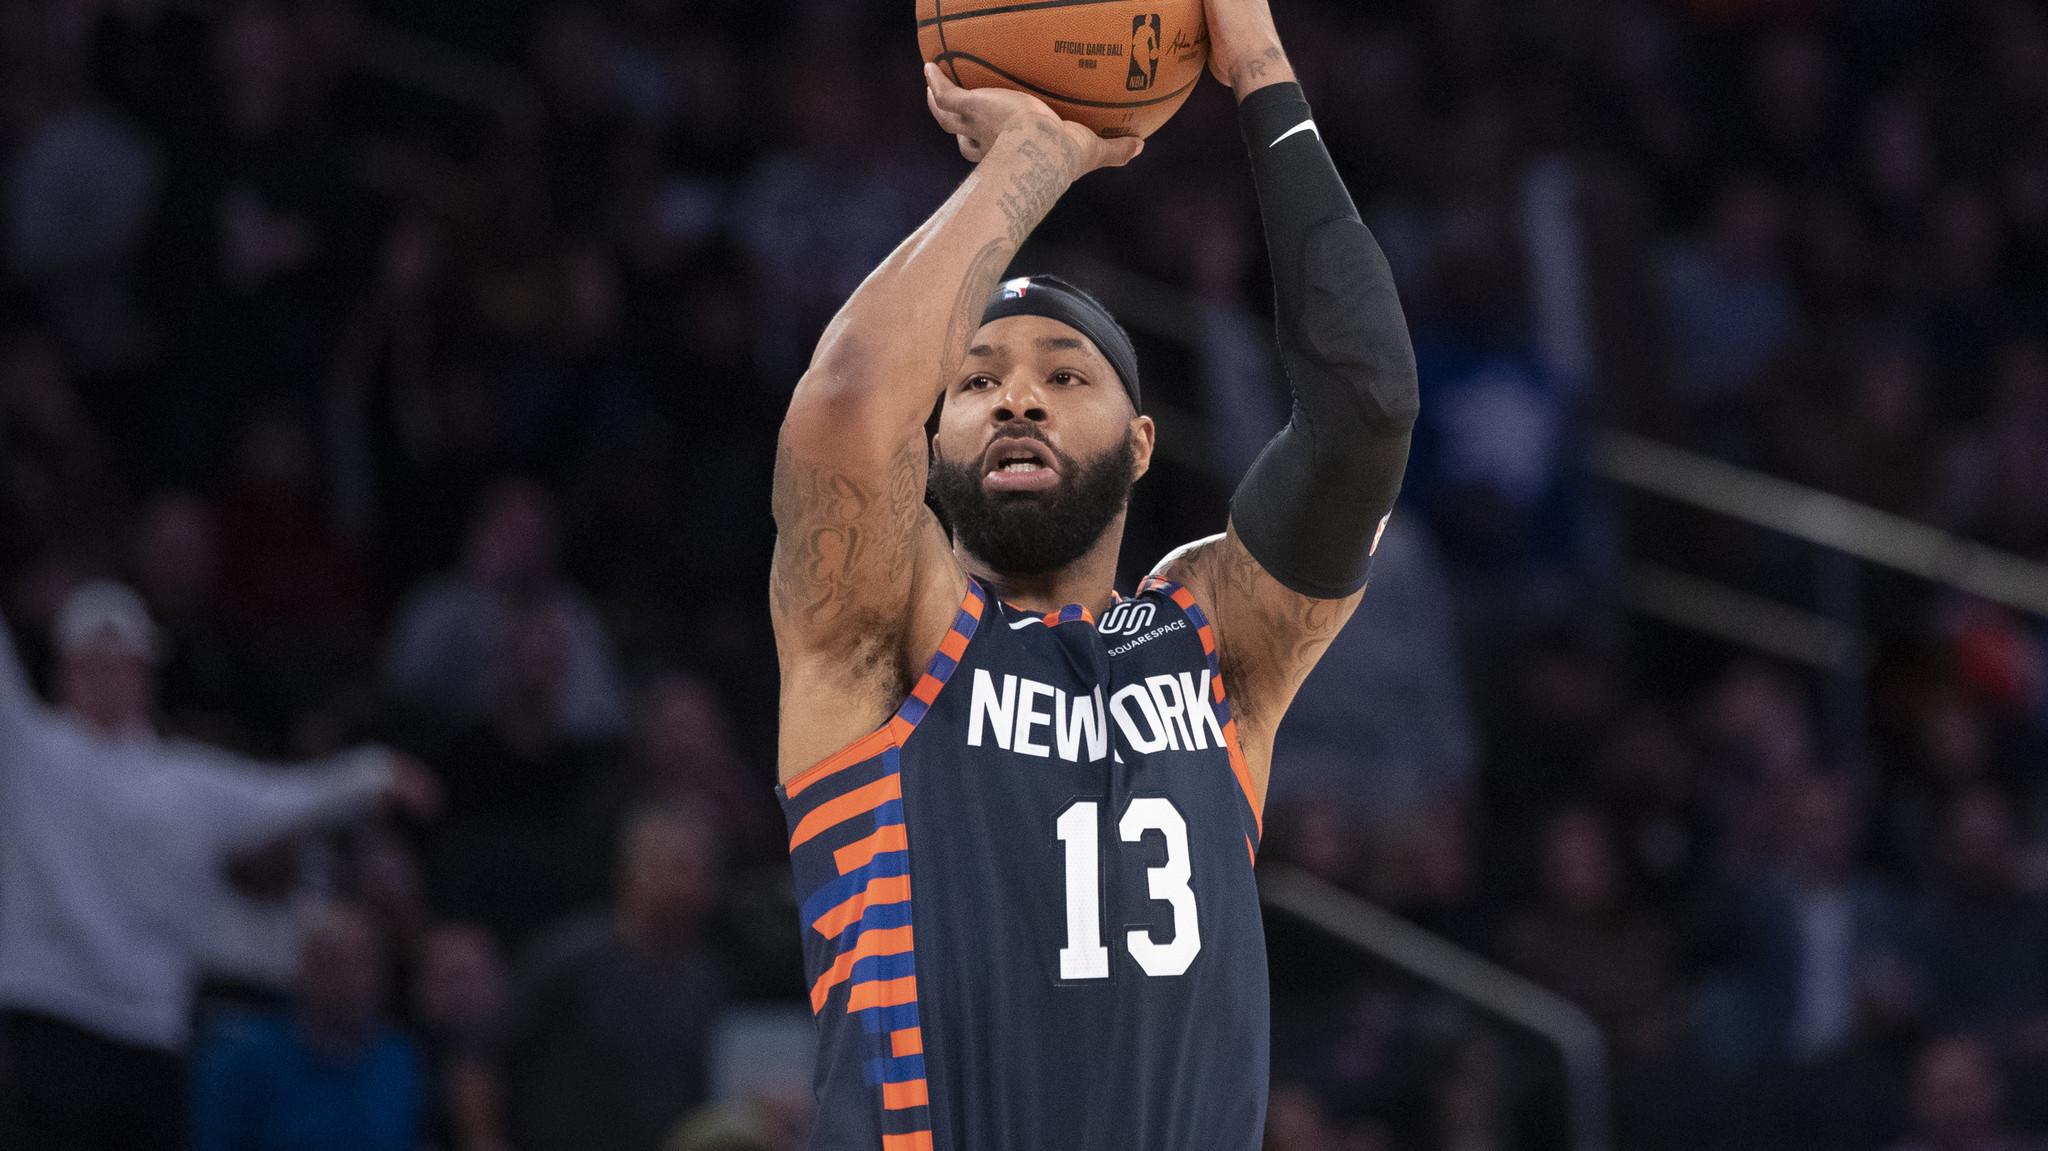 Marcus Morris gambled on himself and believes it will pay off lucratively with the Knicks long-term